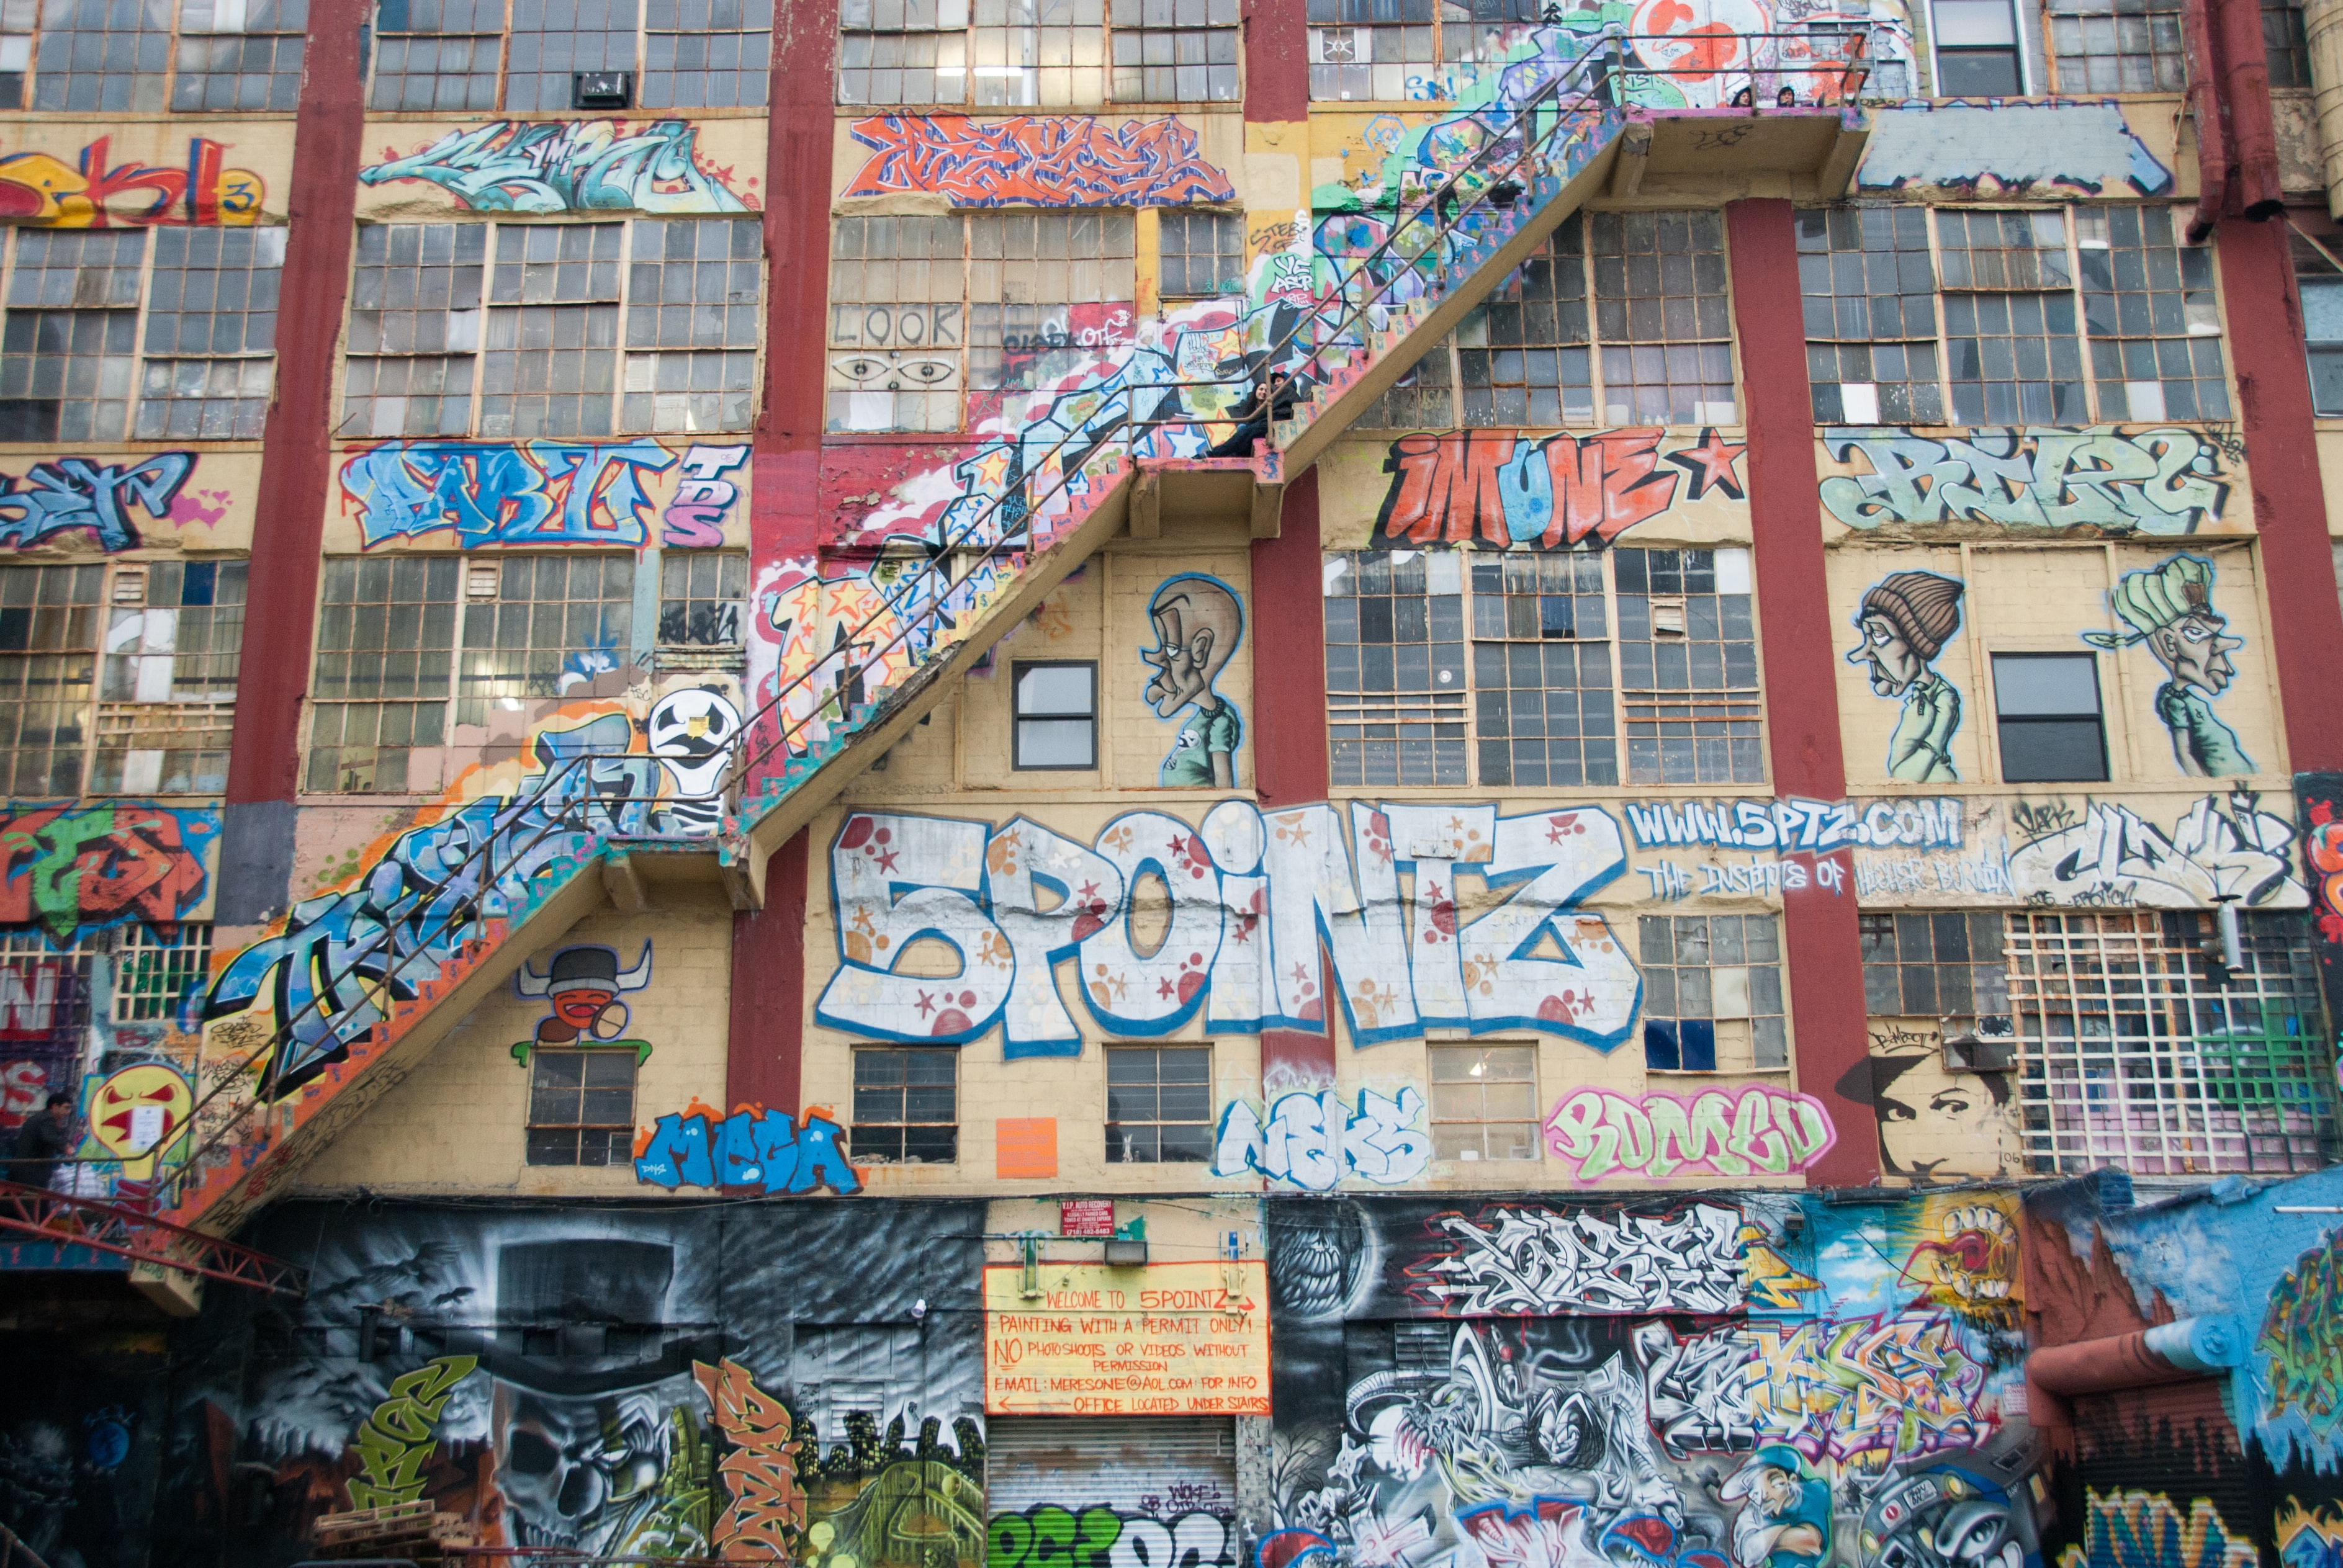 concrete structure filled with murals